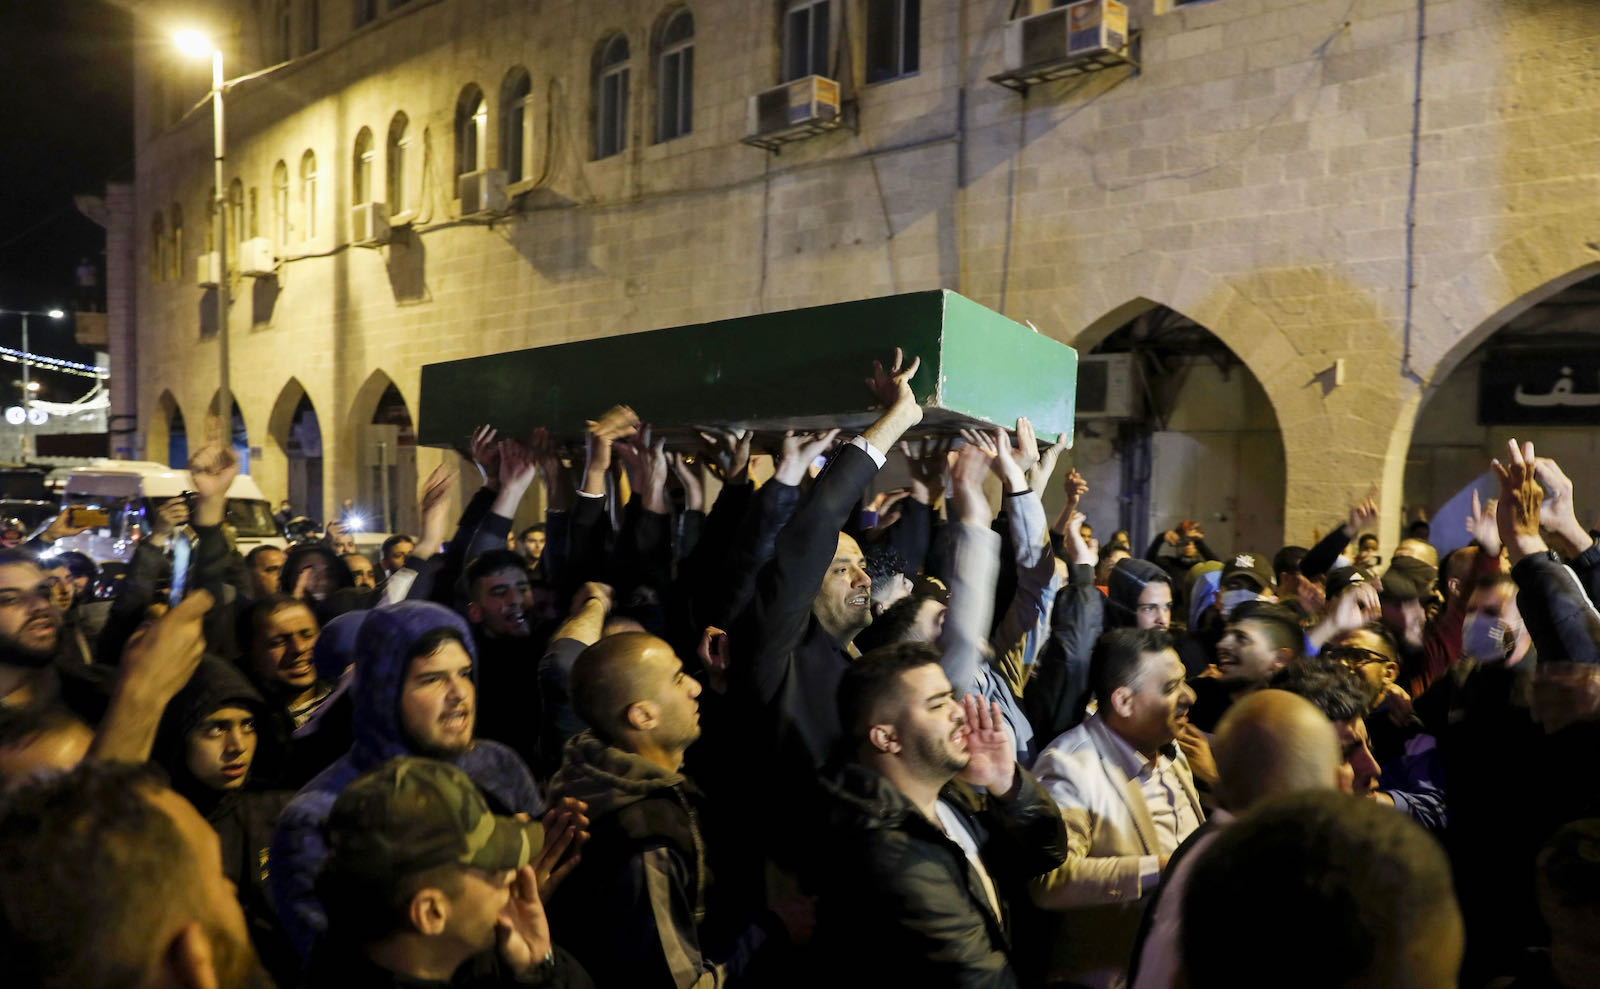 Angry Palestinian mourners carrying the coffin of Eyad al-Hallaq